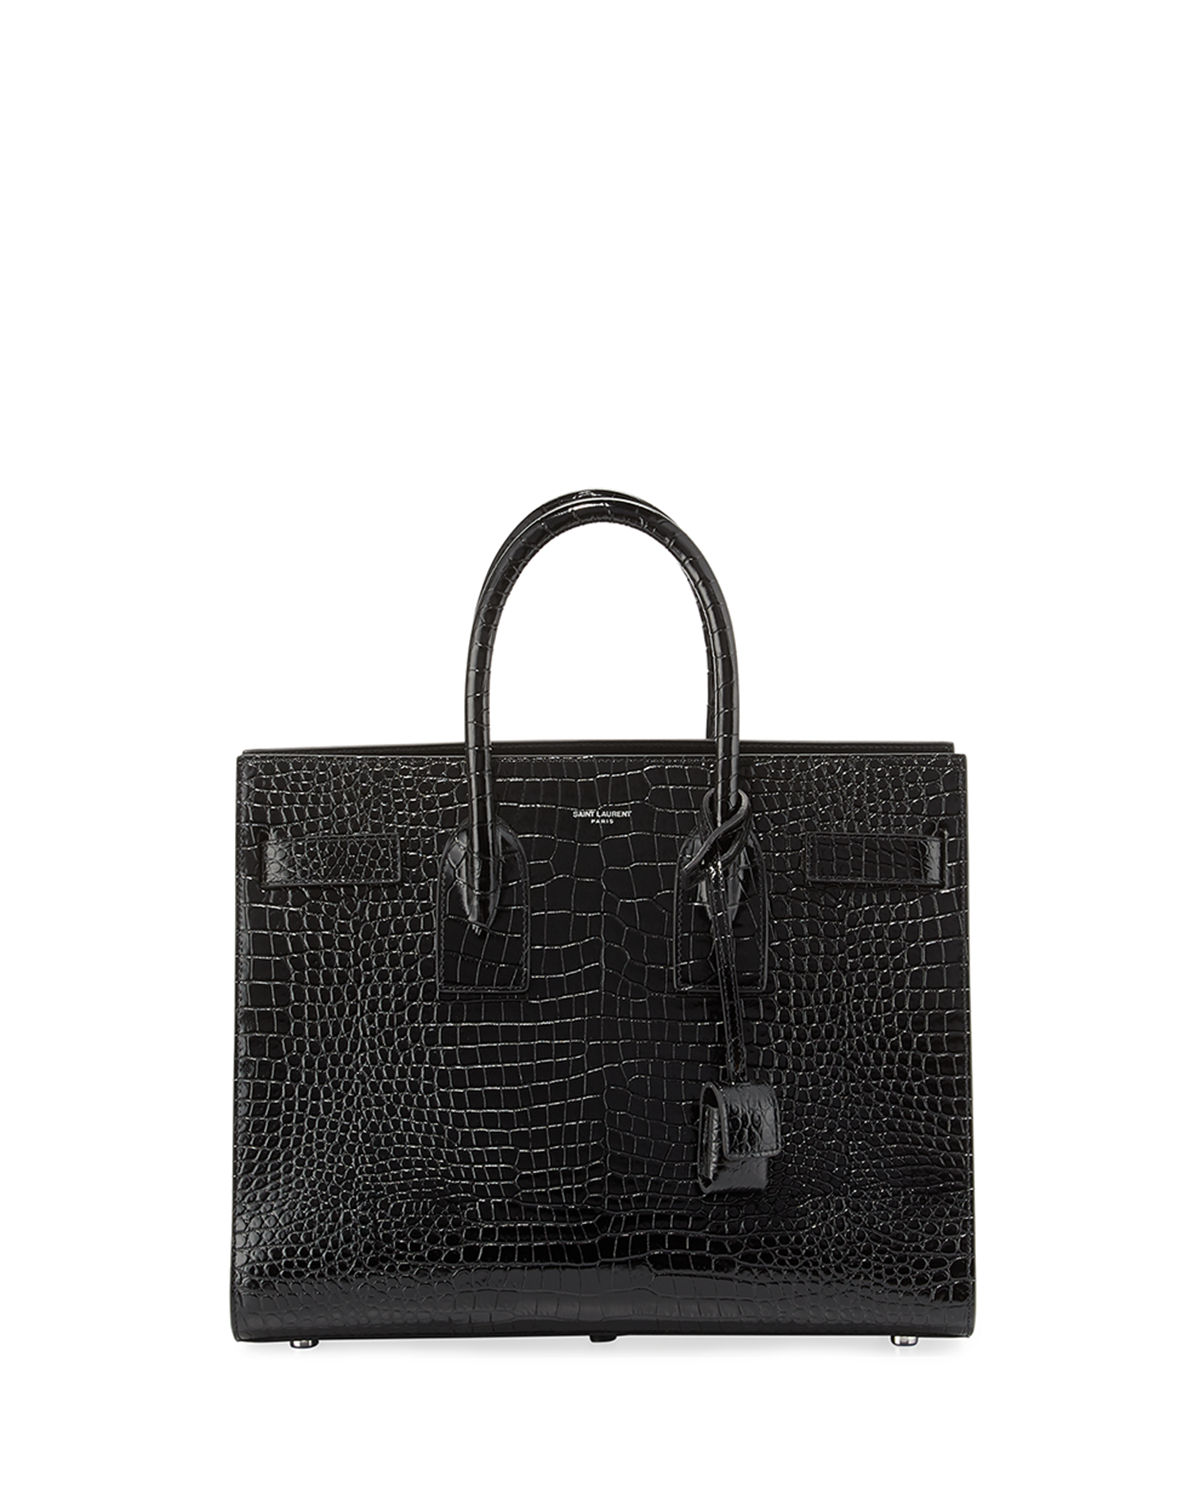 35f6e4595880 Saint LaurentSac de Jour Small Crocodile-Embossed Satchel Bag - Silver  Hardware